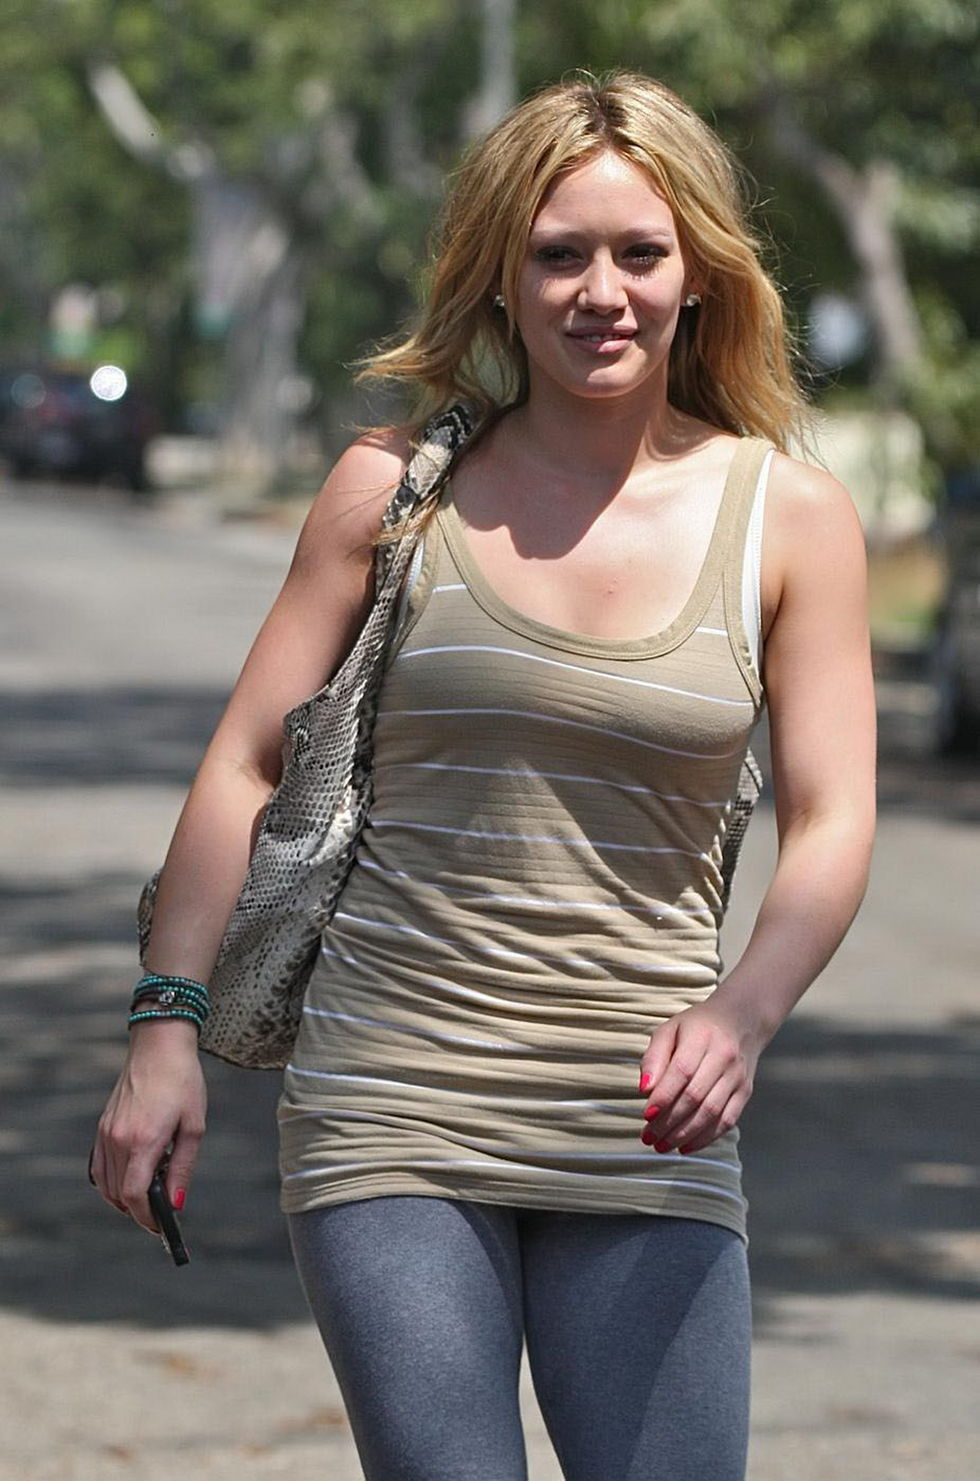 hilary-duff-candids-in-hollywood-2-01